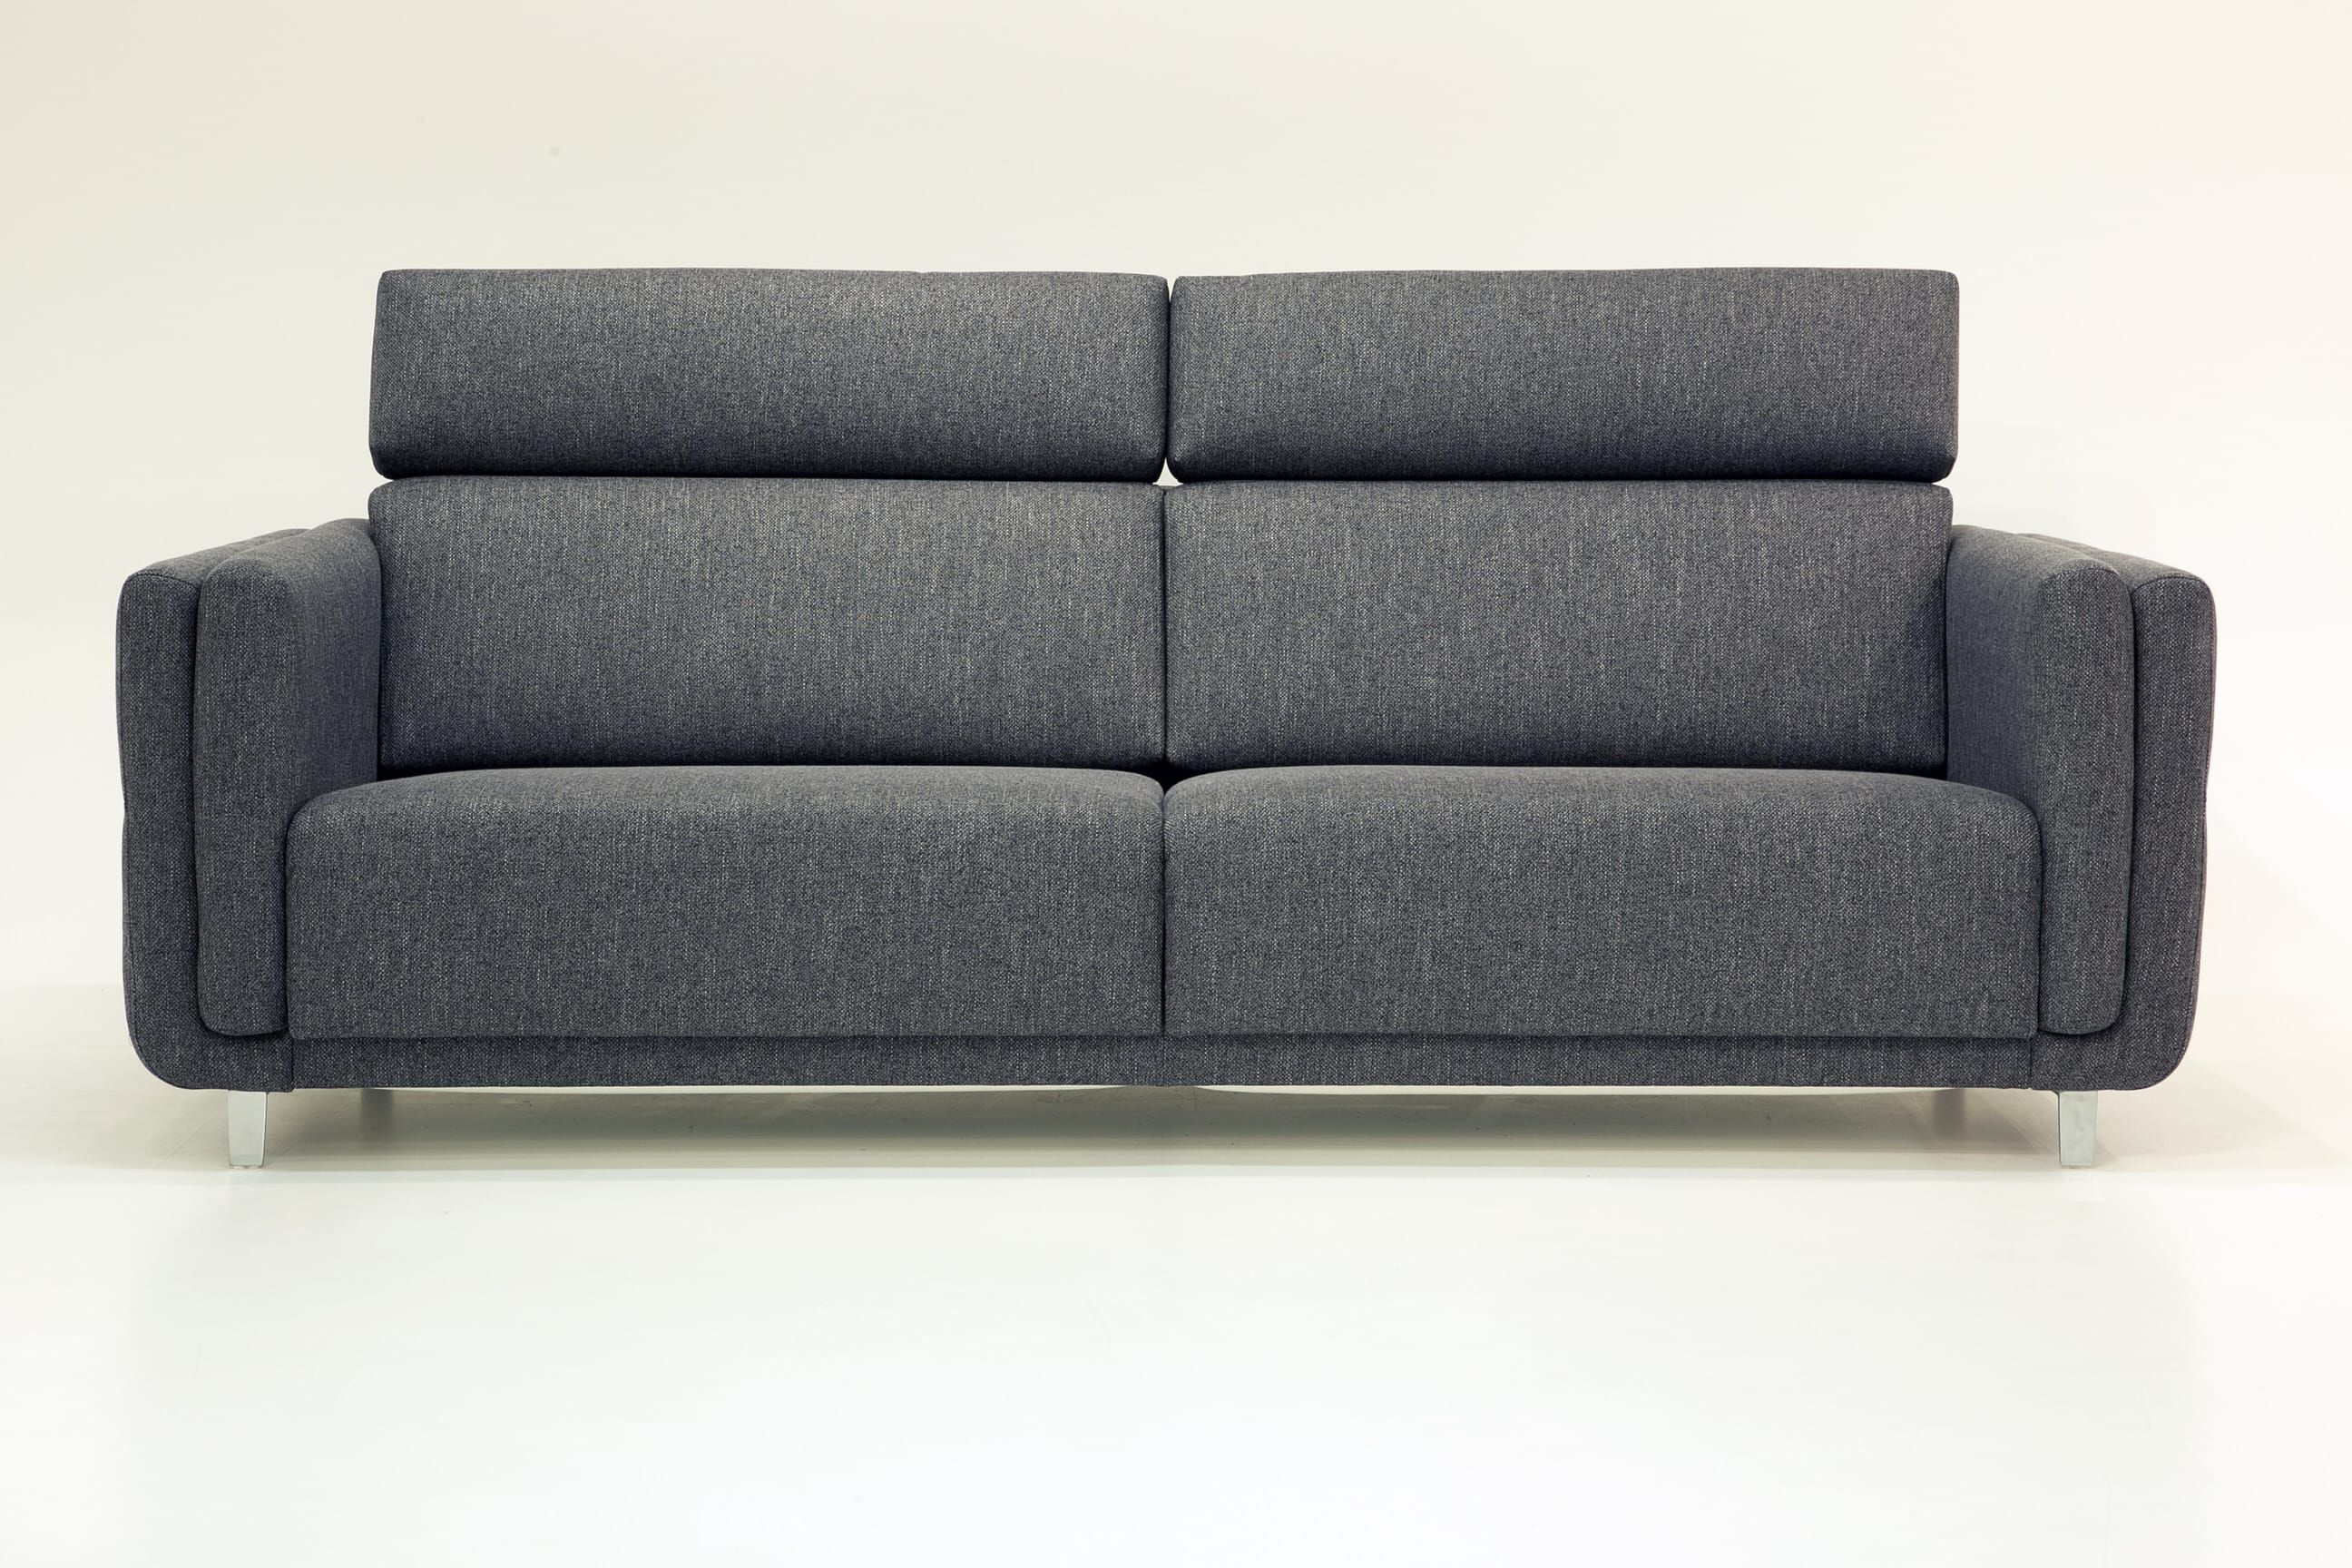 Paris Sofa Sleeper (King Size) by Luonto Furniture in 2020